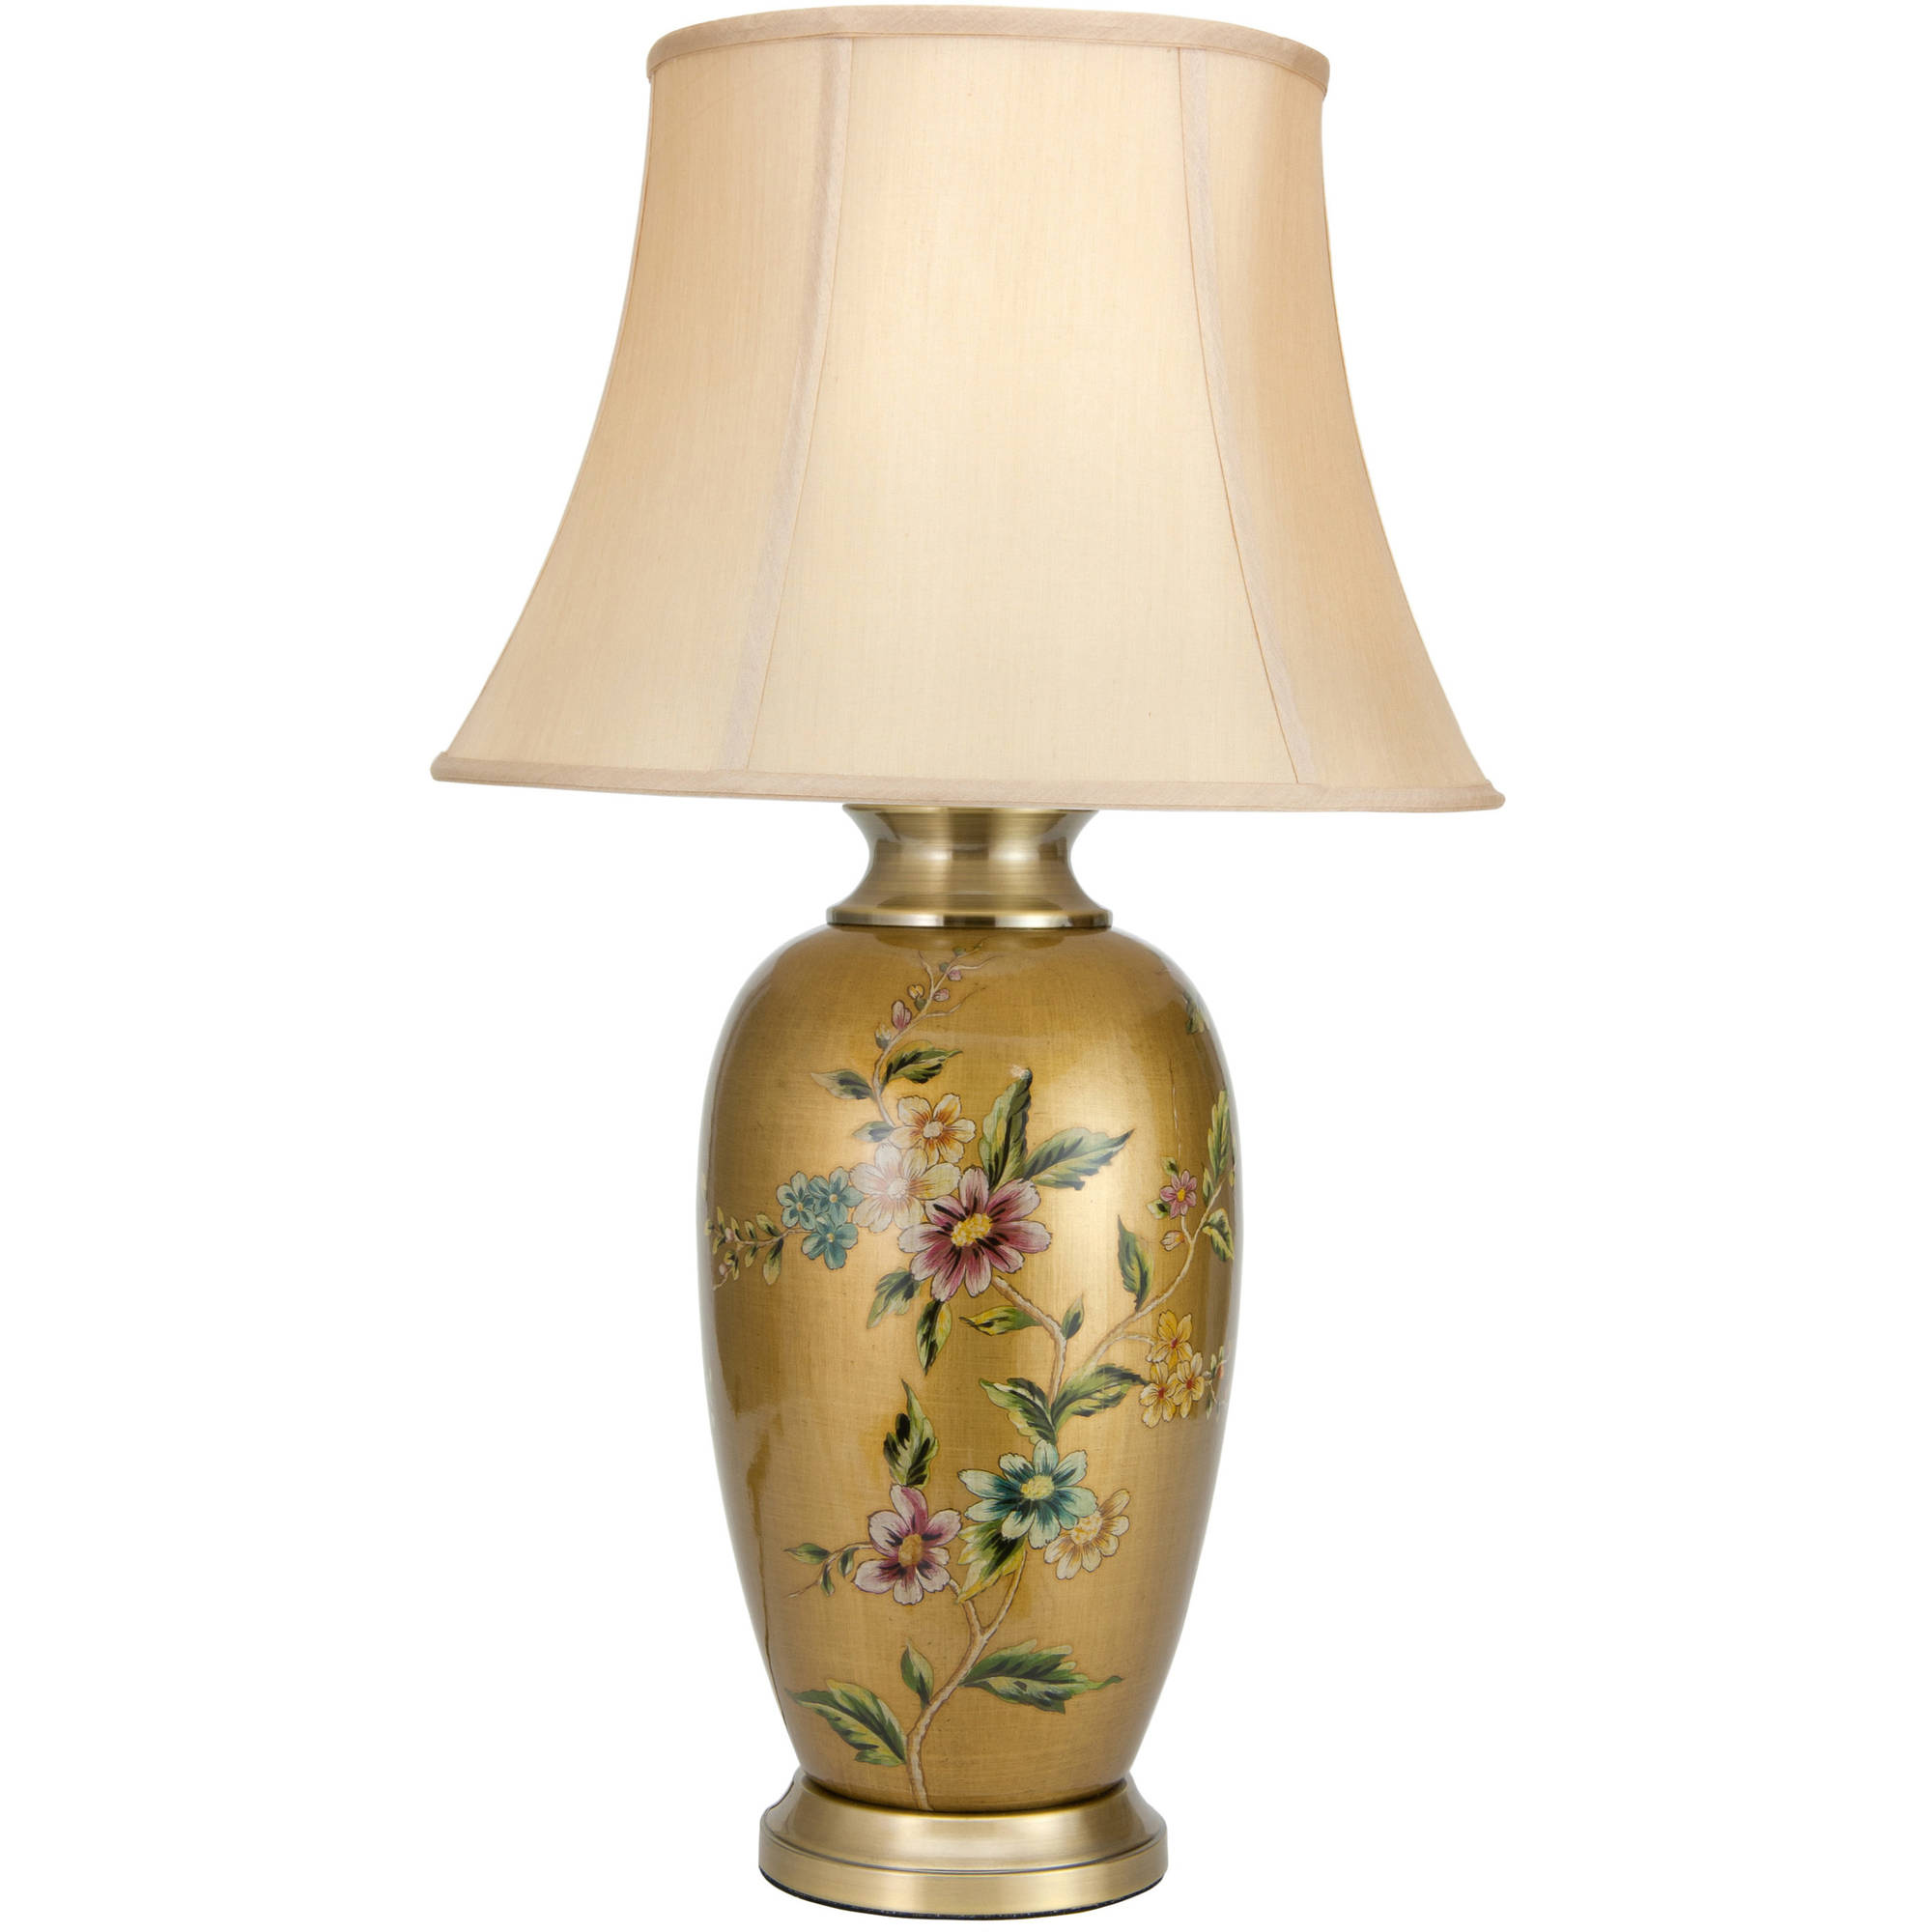 "27"" Flowers on Pale Gold Porcelain Vase Lamp by Oriental Furniture"